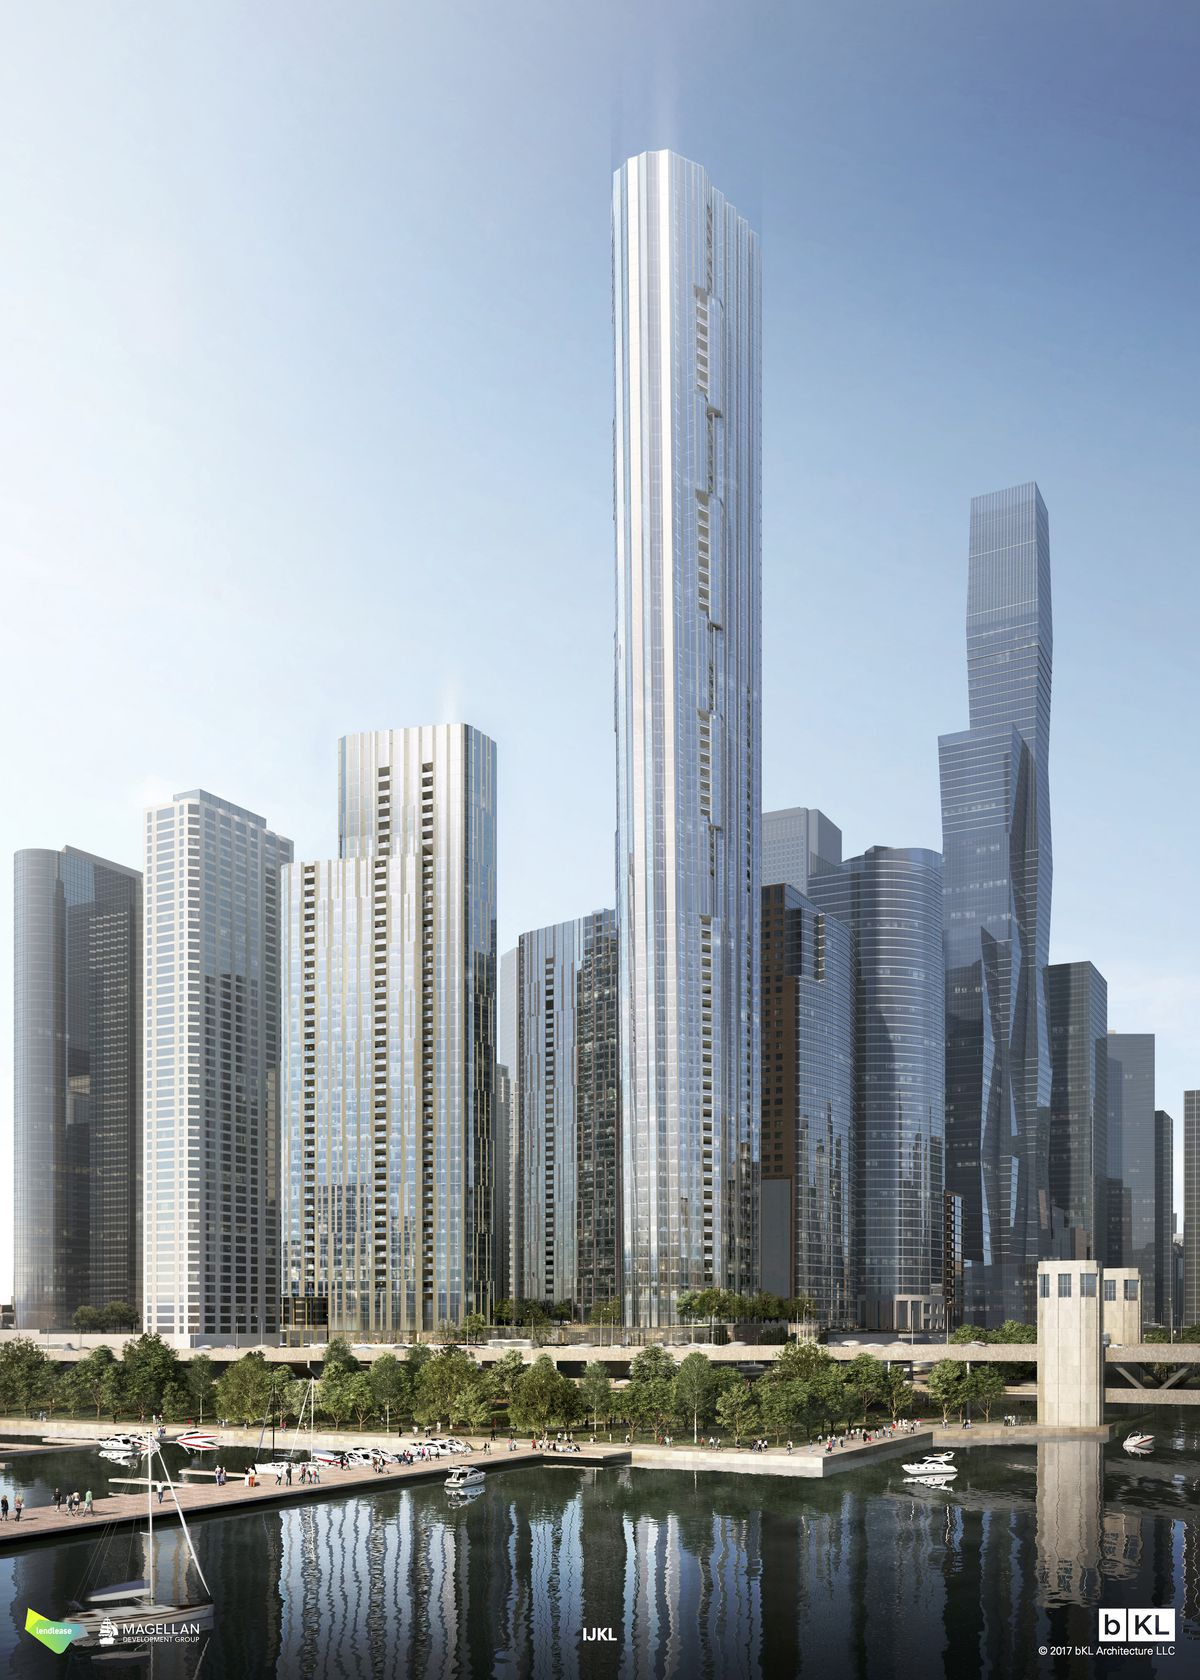 Proposed towers for Lakeshore East will deliver thousands of new residences - Curbed Chicago